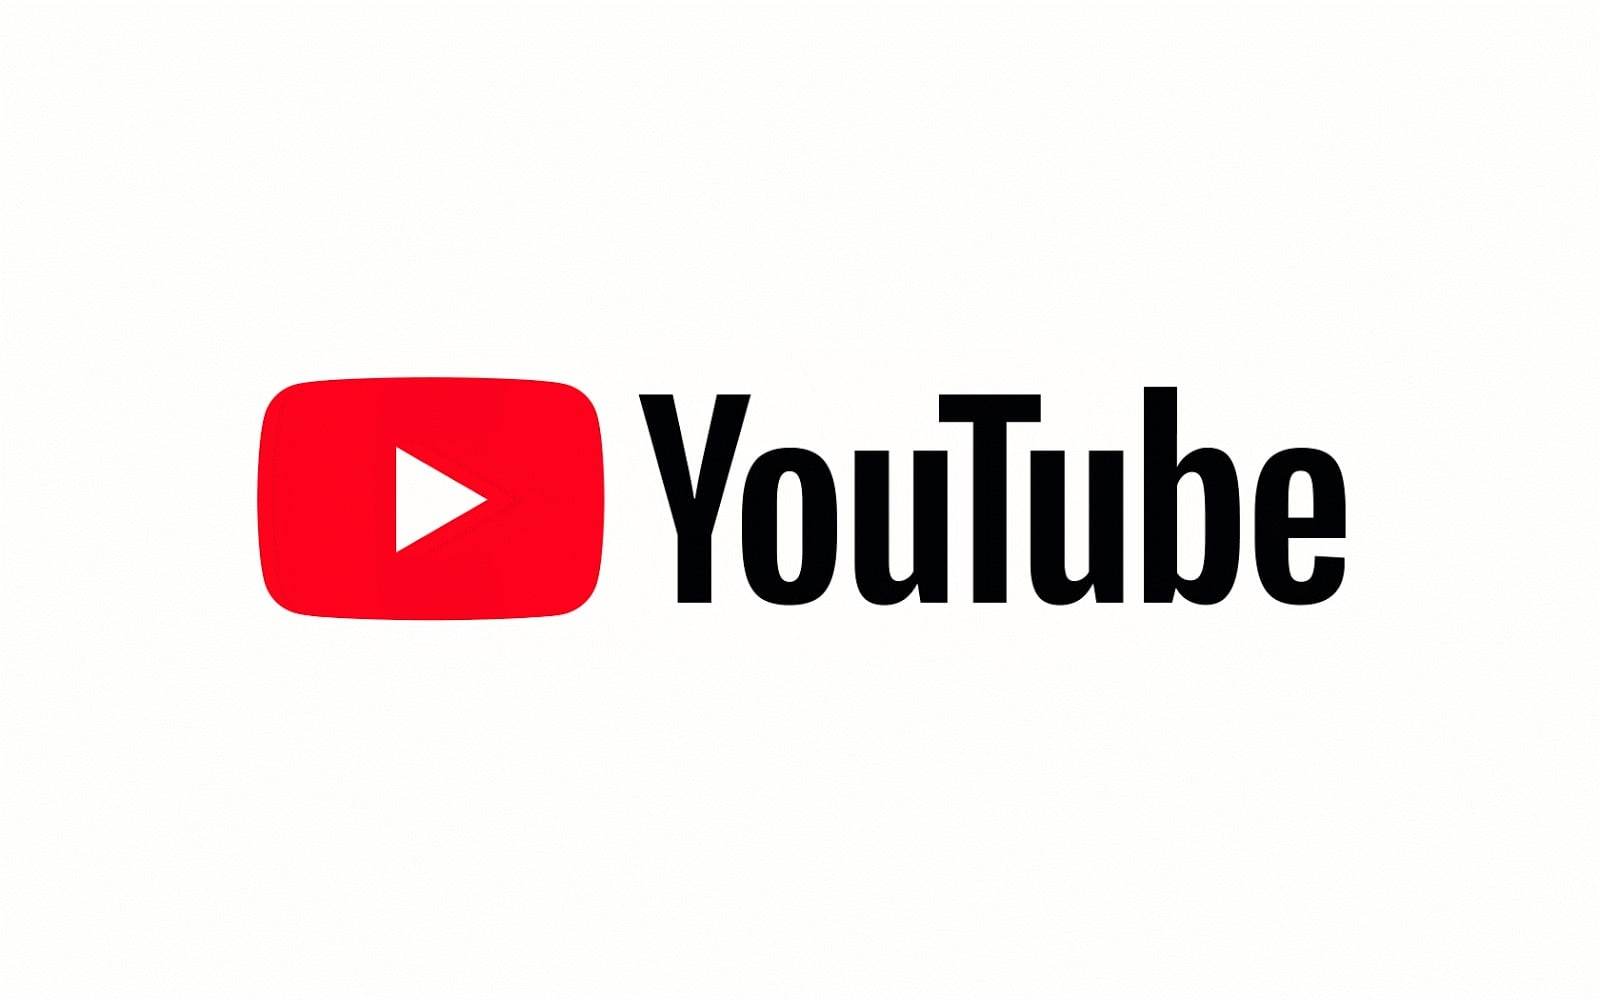 YouTube 2017 UI LOGO 02